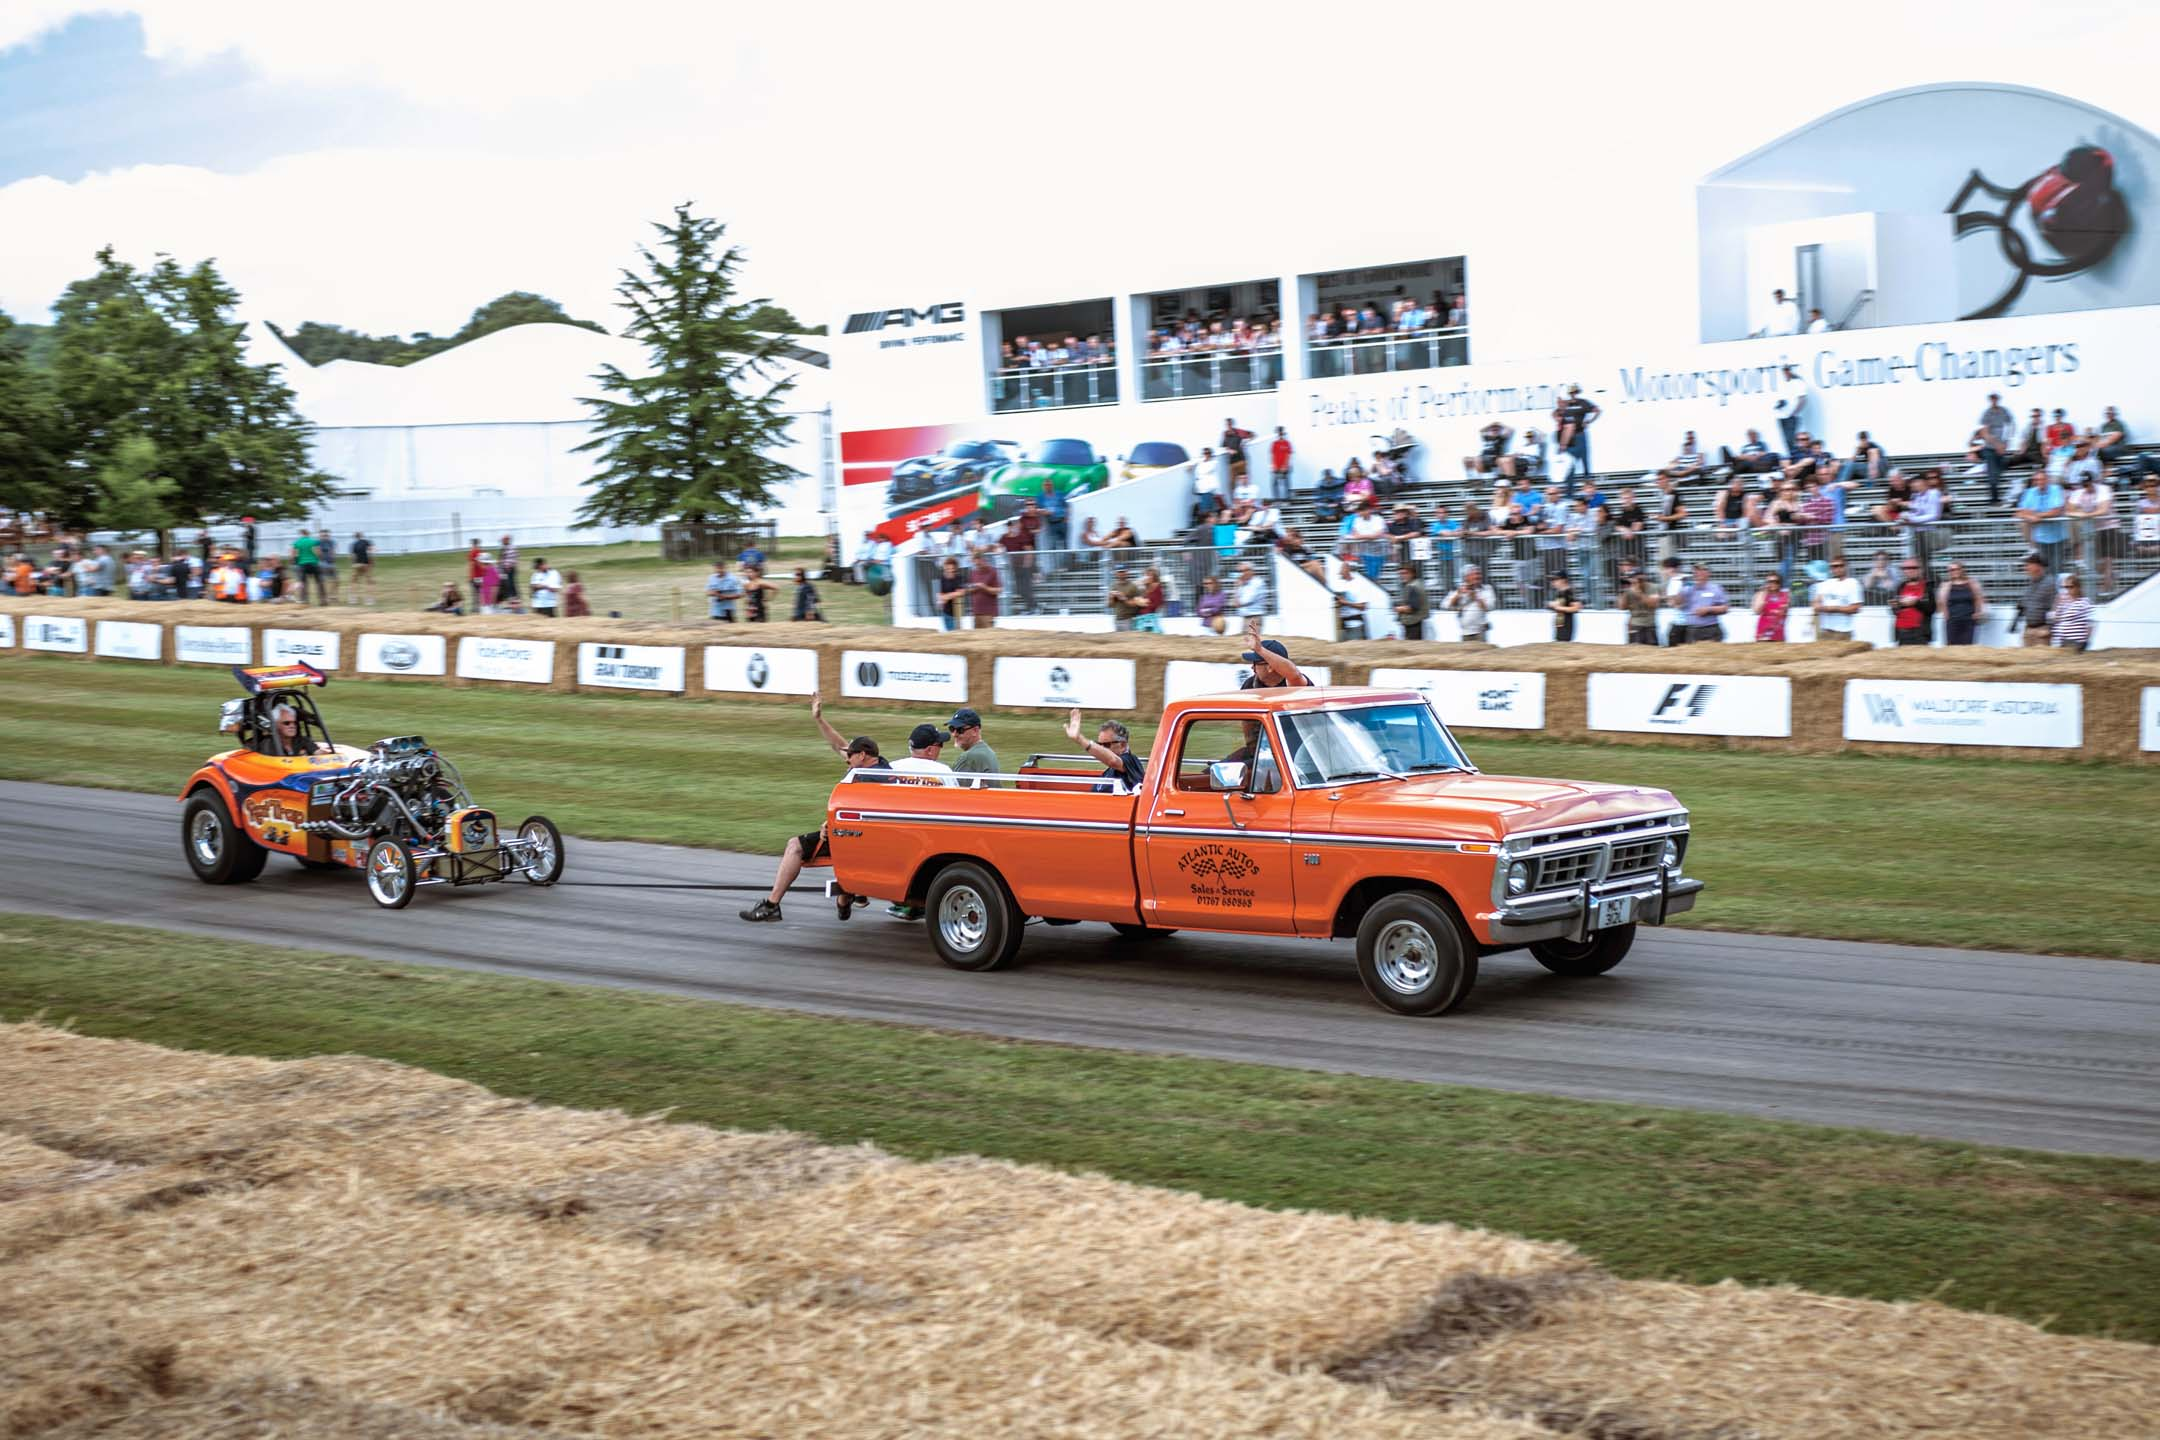 A common sight at any North American historic drag race, this F-150-towed dragster showed up at Goodwood like the proverbial bull in a china shop. Nobody seemed to mind the broken crockery everywhere.